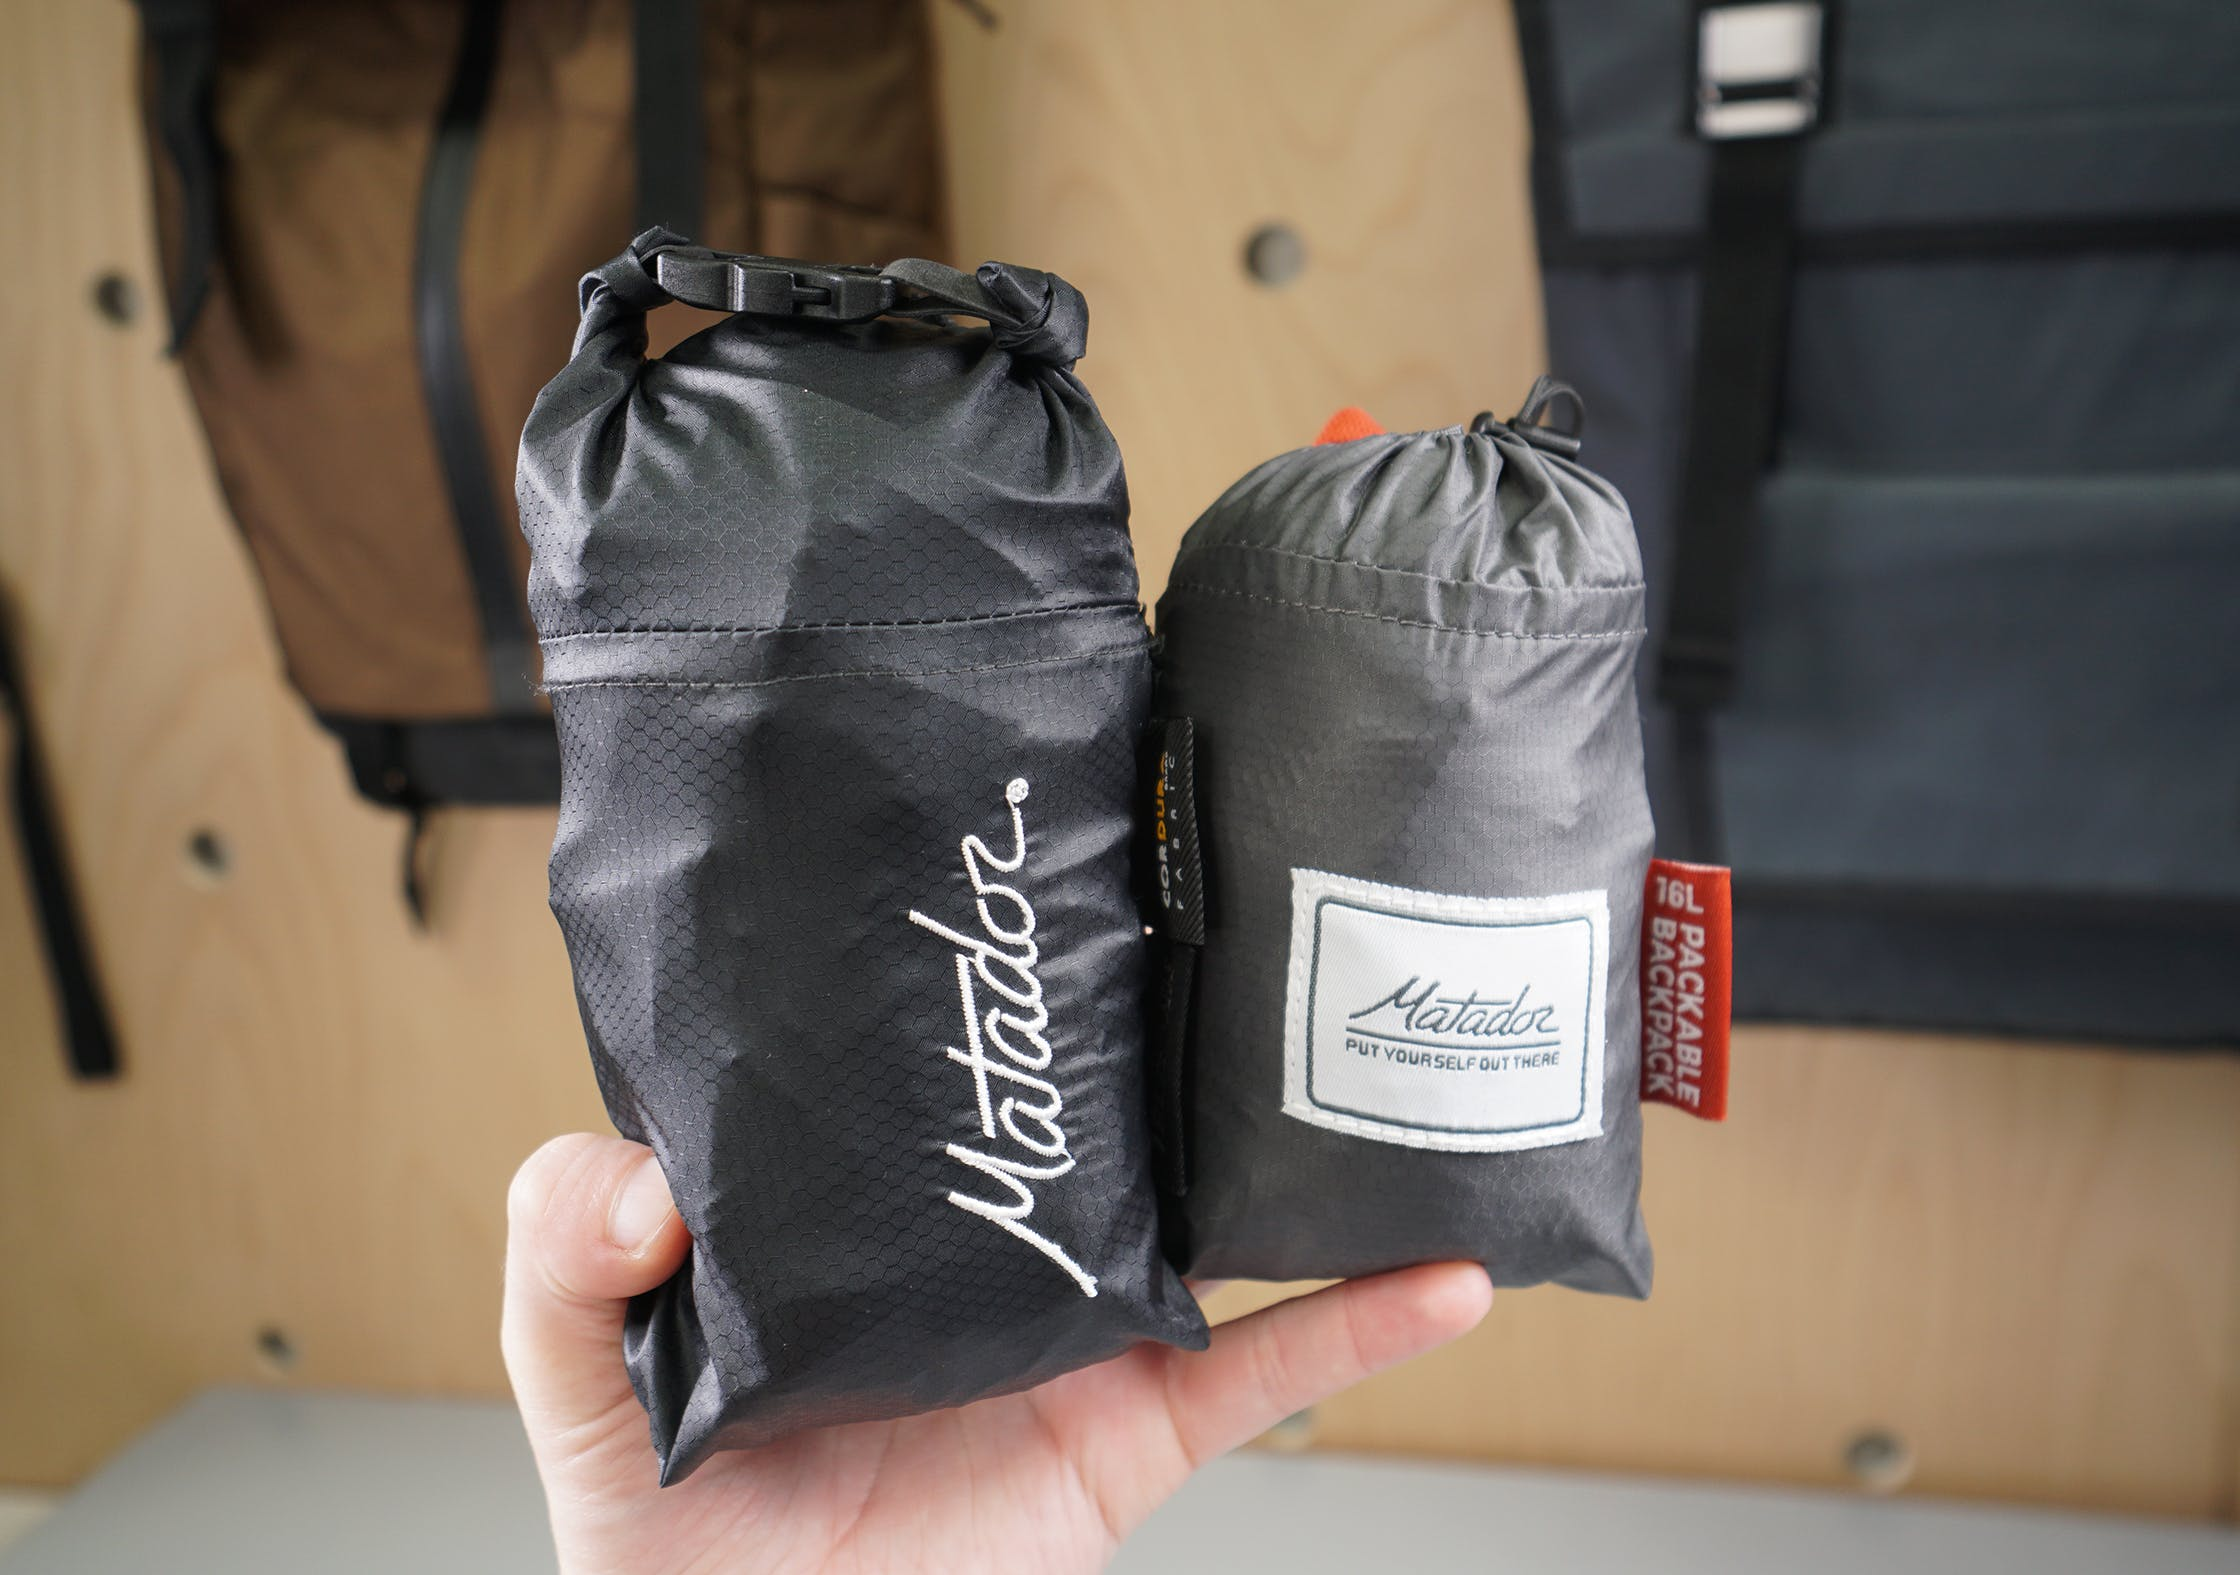 Matador Freefly16 Daypack   (Left) Compared To The Matador Daylite16 (Right)